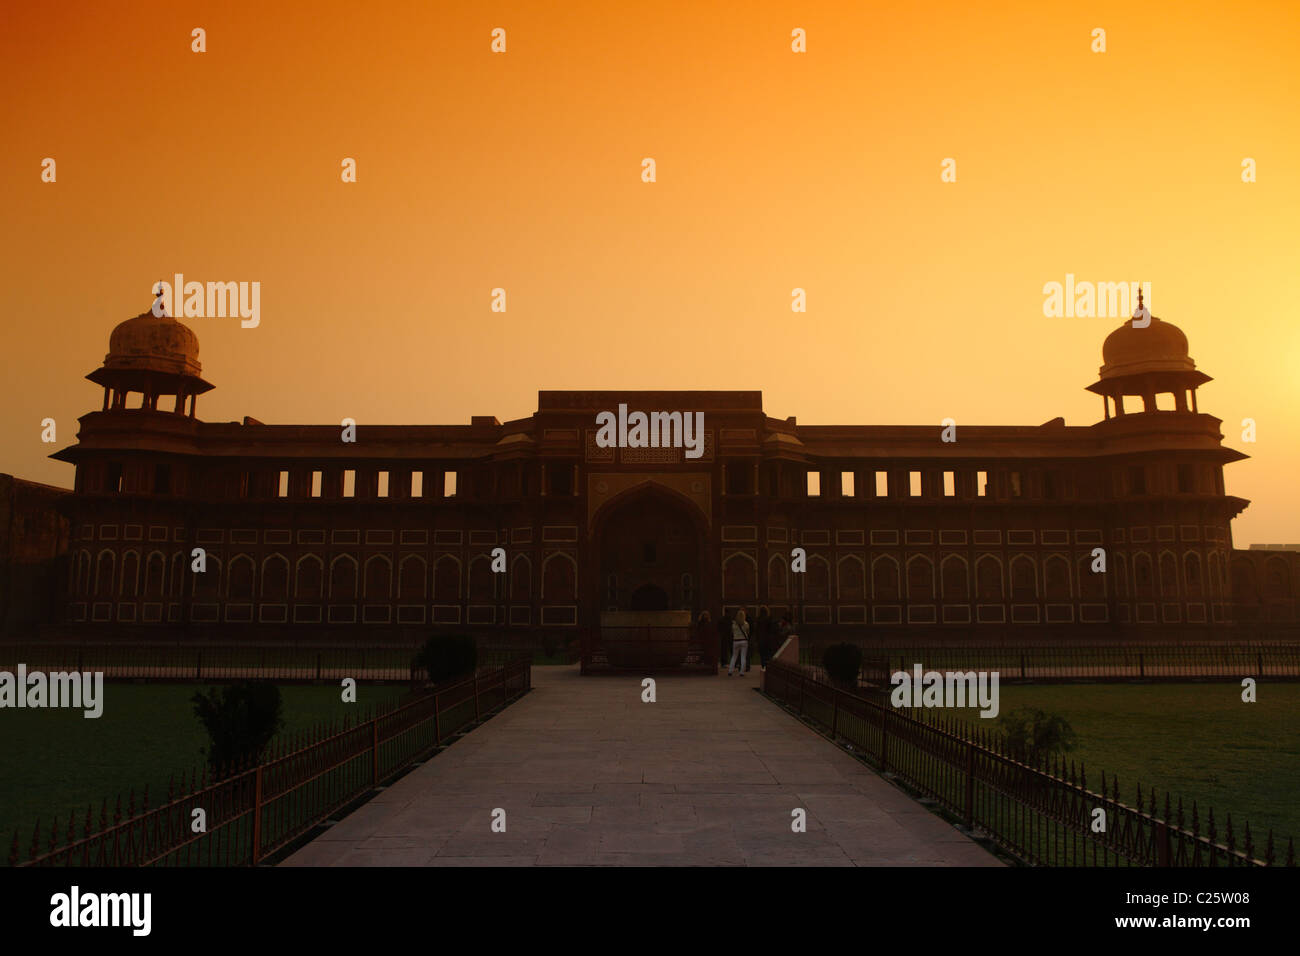 Jahangiri mahal in the Red Fort, Agra, India - Stock Image